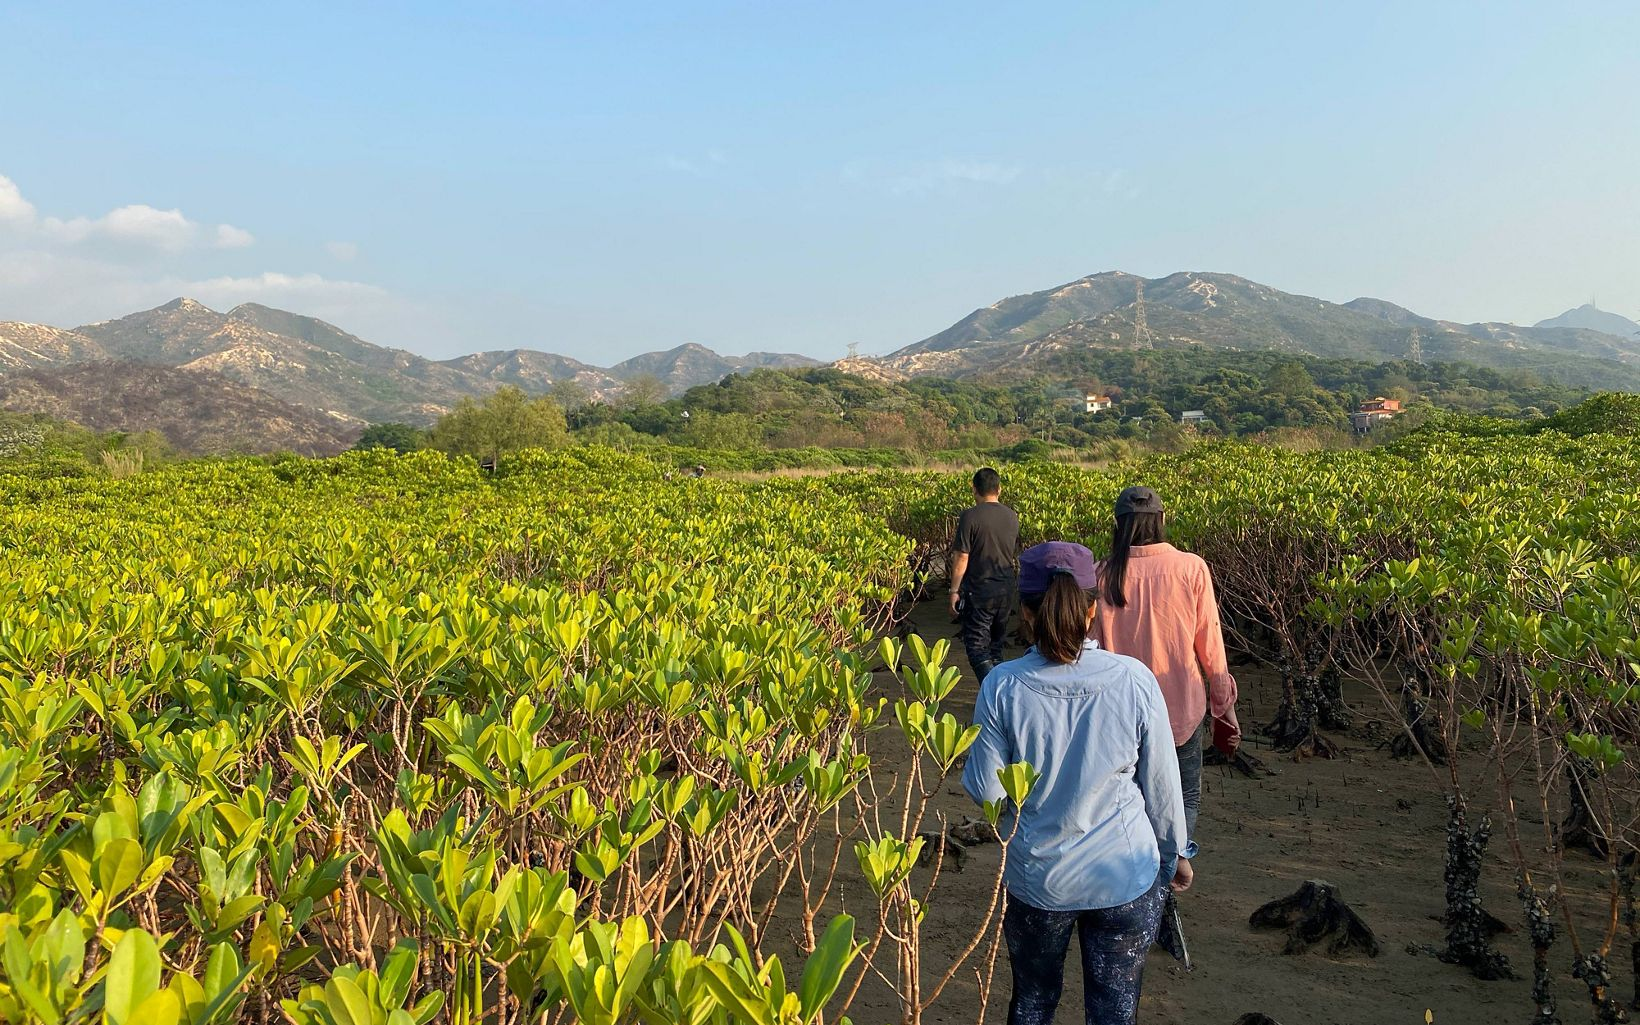 Three people with their backs to the camera walk through a field of mangroves.